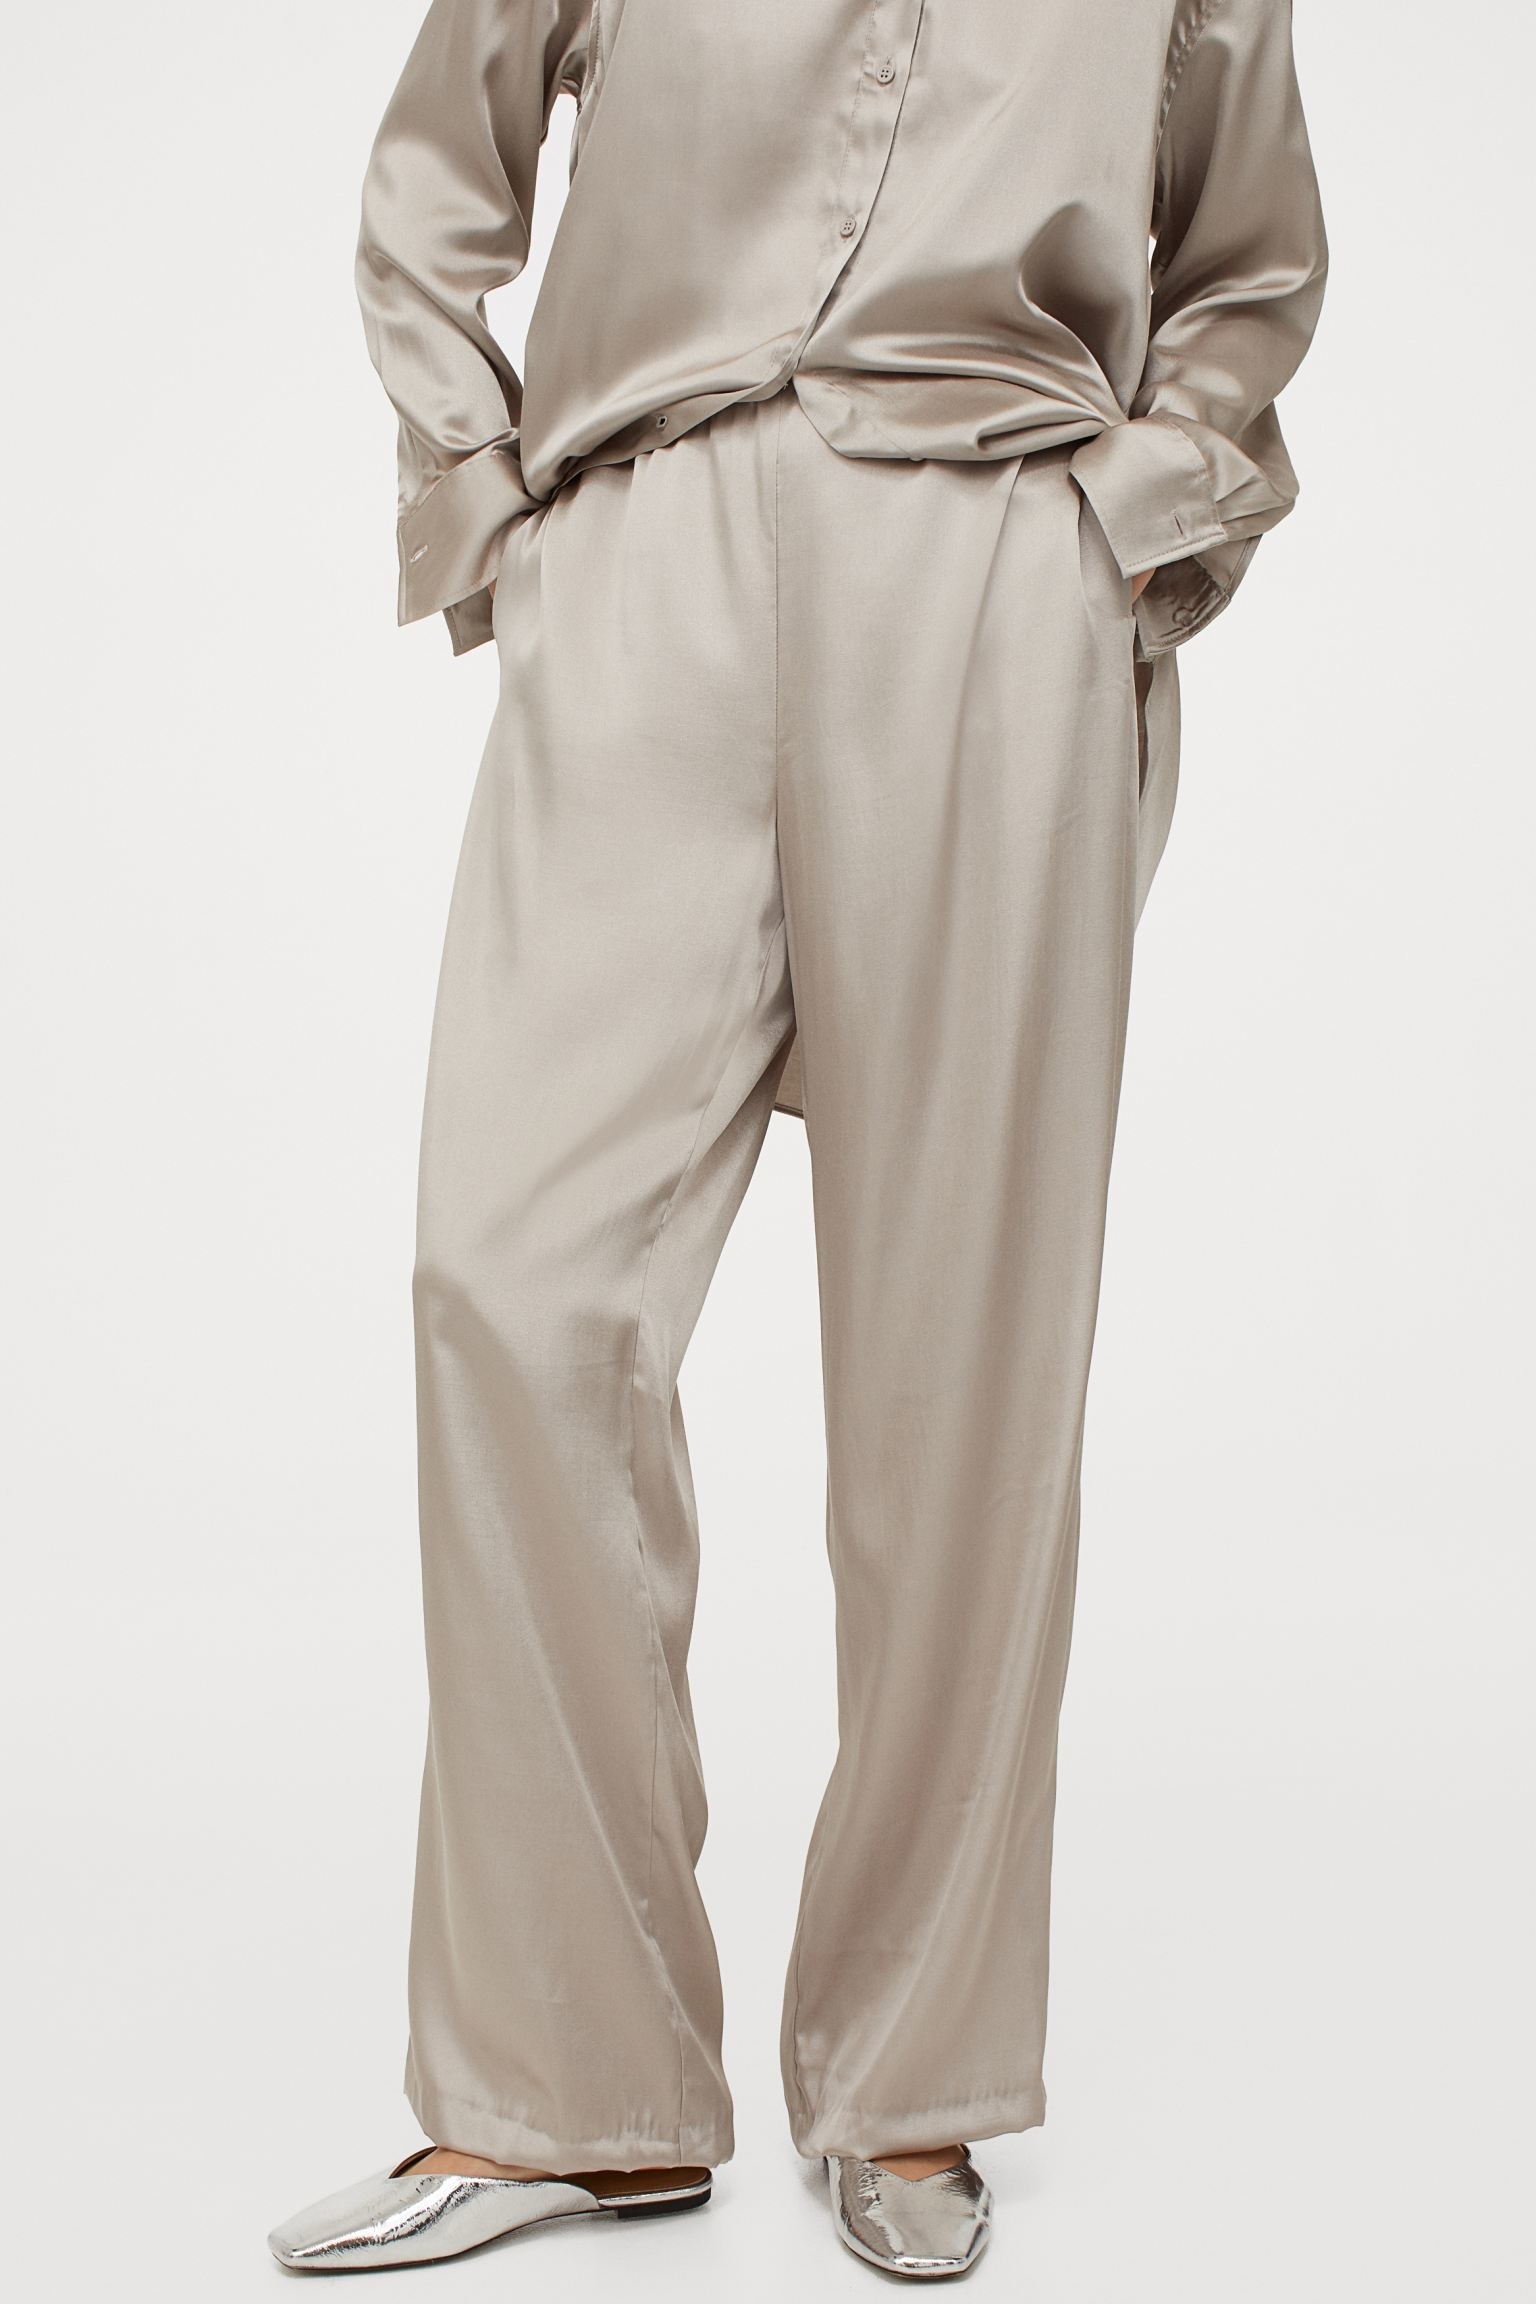 A model wearing the satin pants in taupe